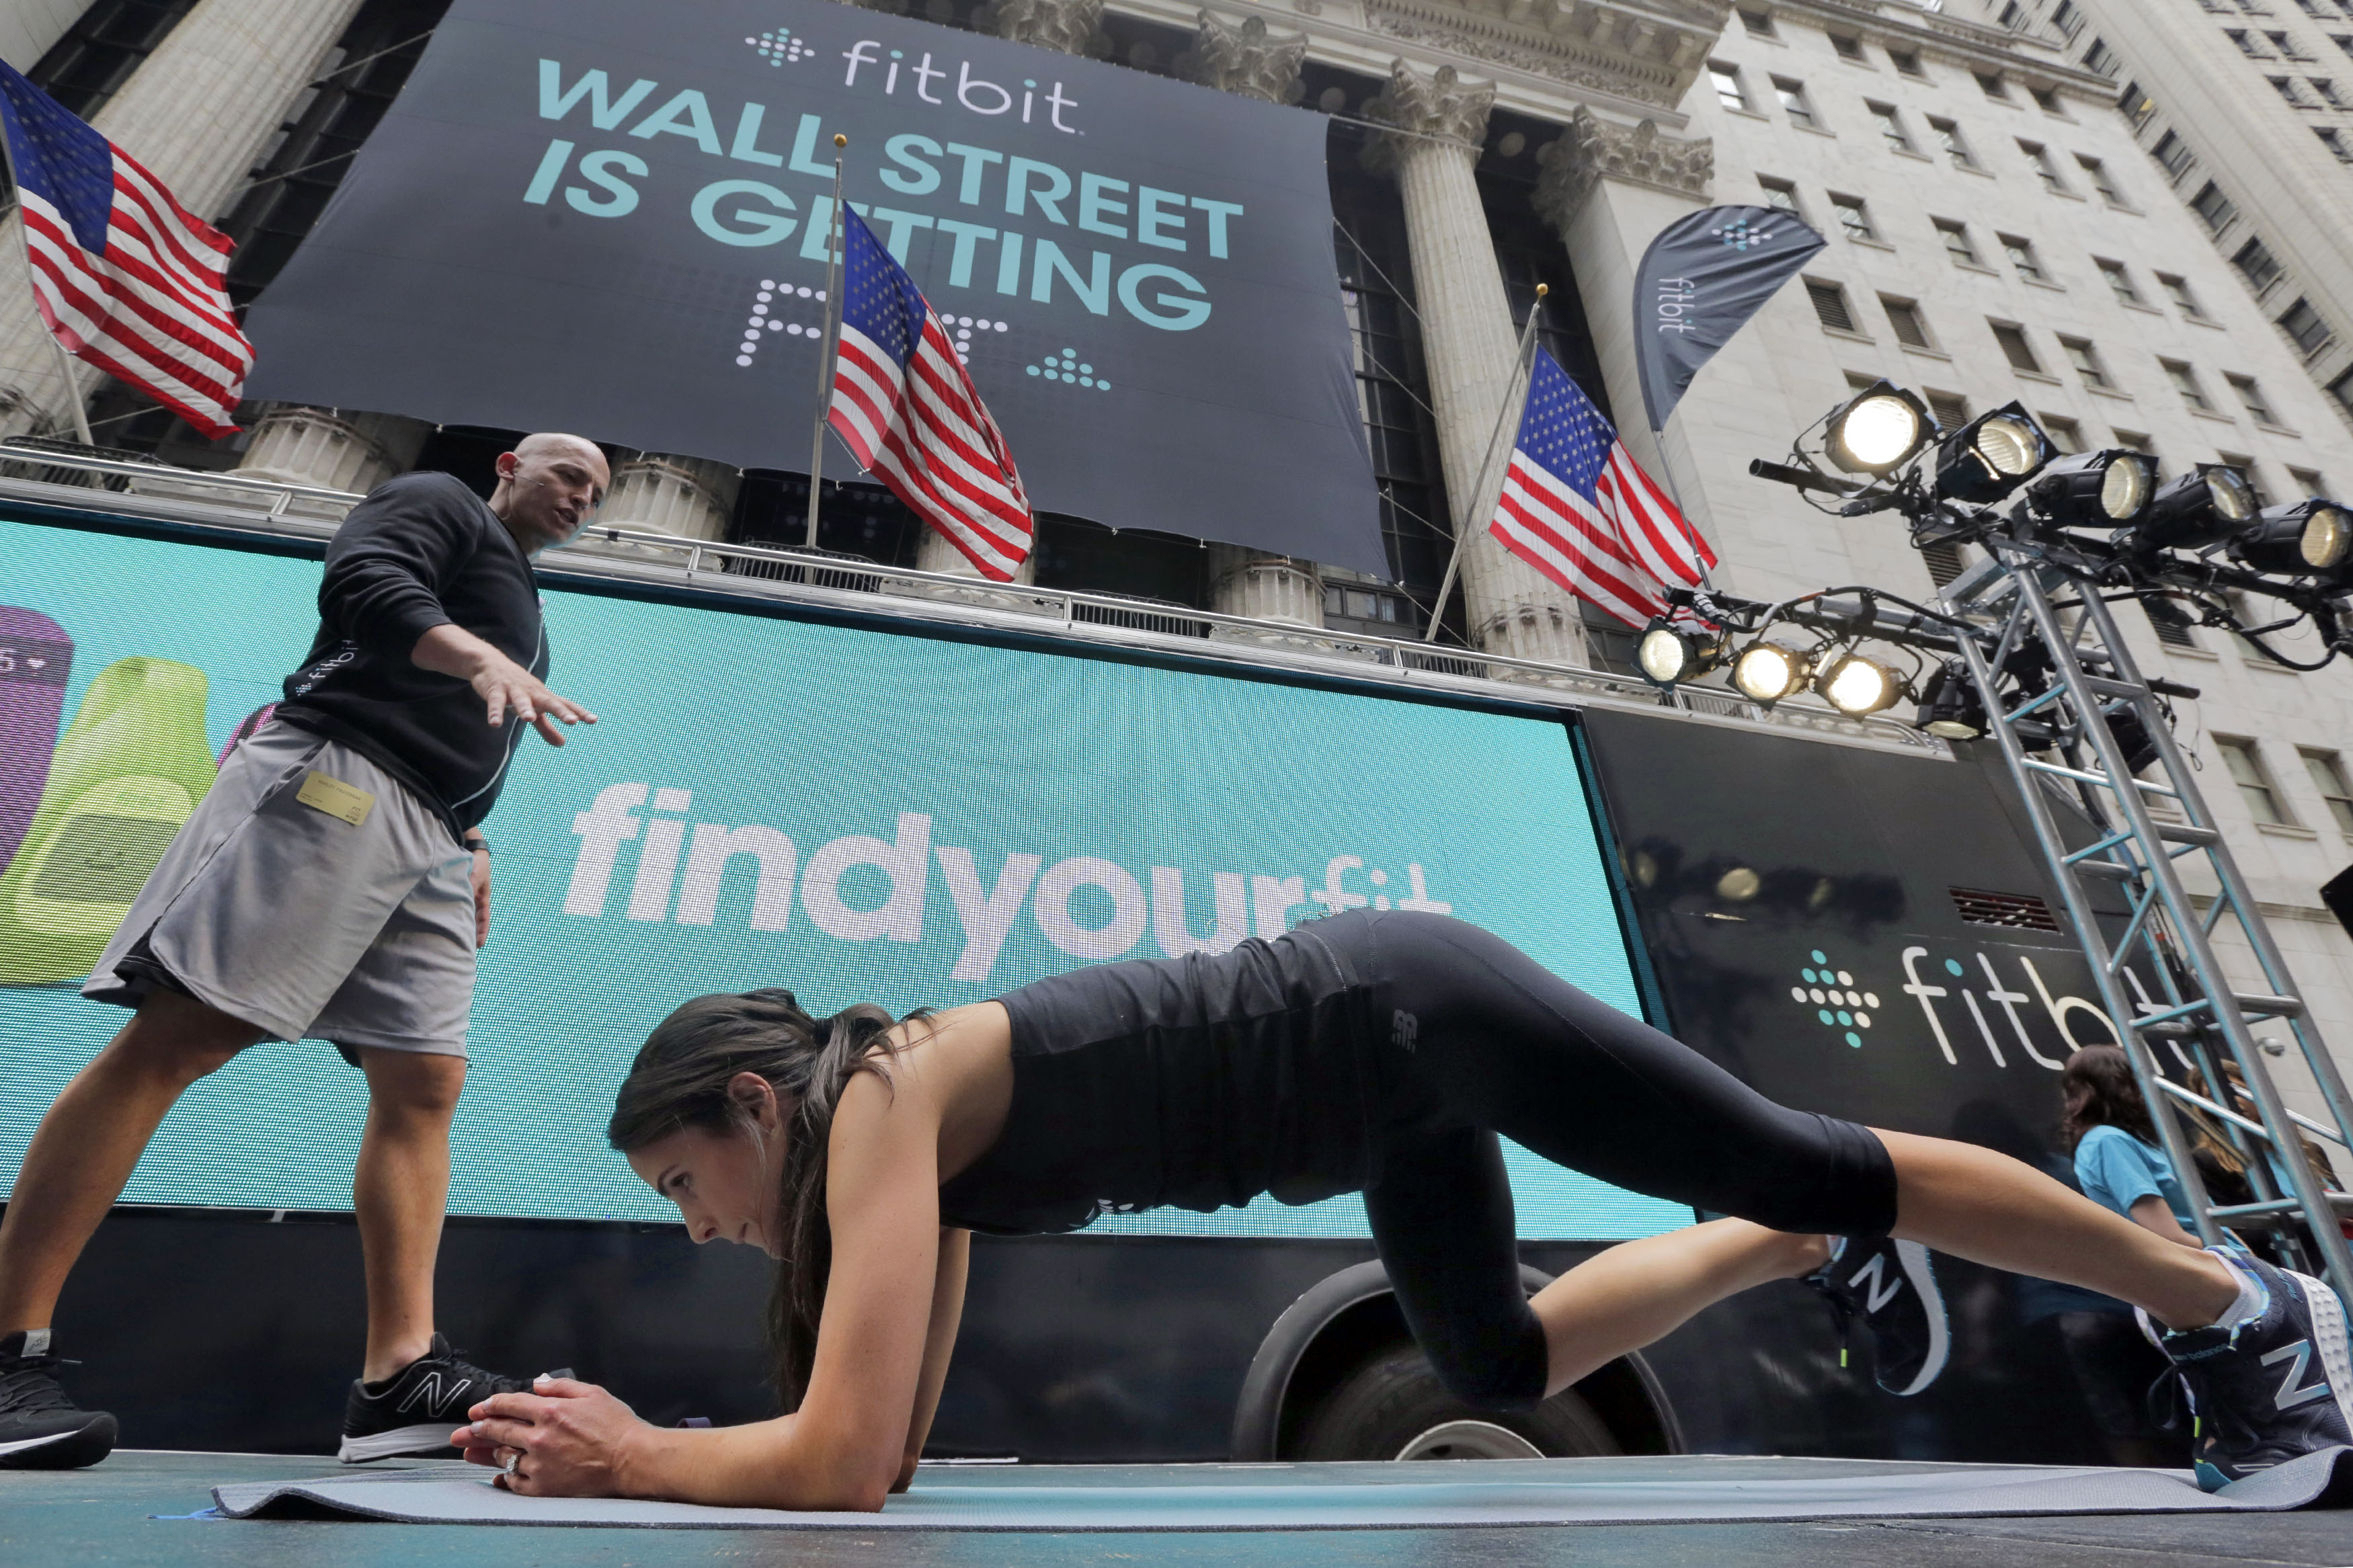 From left: Fitness expert Harley Pasternak and actress Jordana Brewster lead a work out on behalf of Fitbit, in front of the New York Stock Exchange, June 18, 2015.